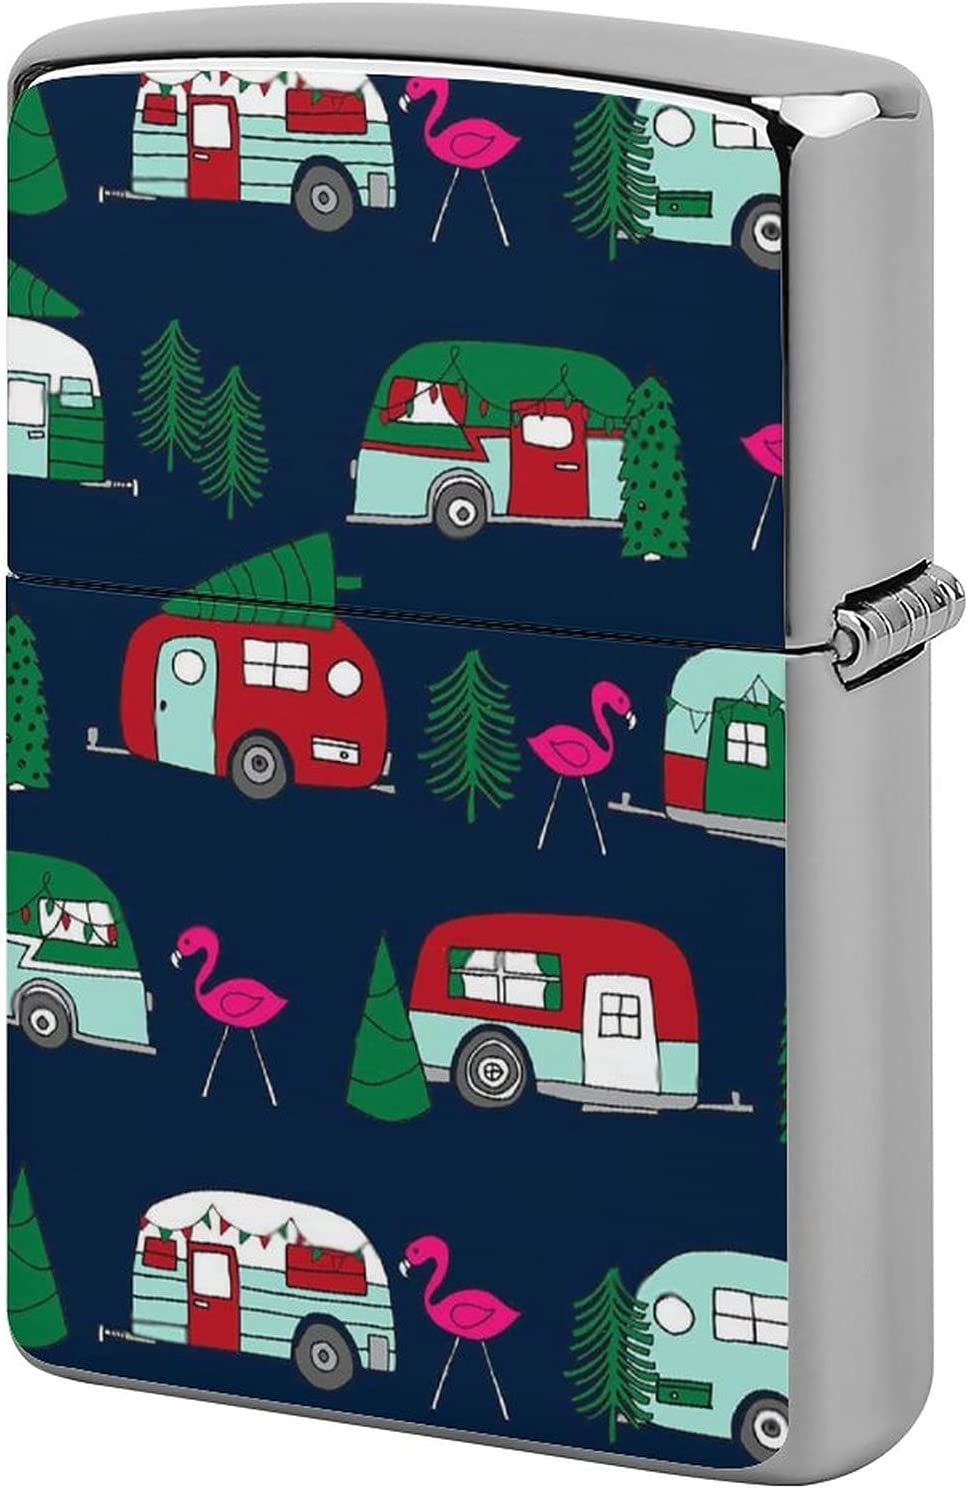 Washington Mall Lighter Animer and price revision Case Abstract Pineapples Cover Housing Windproof